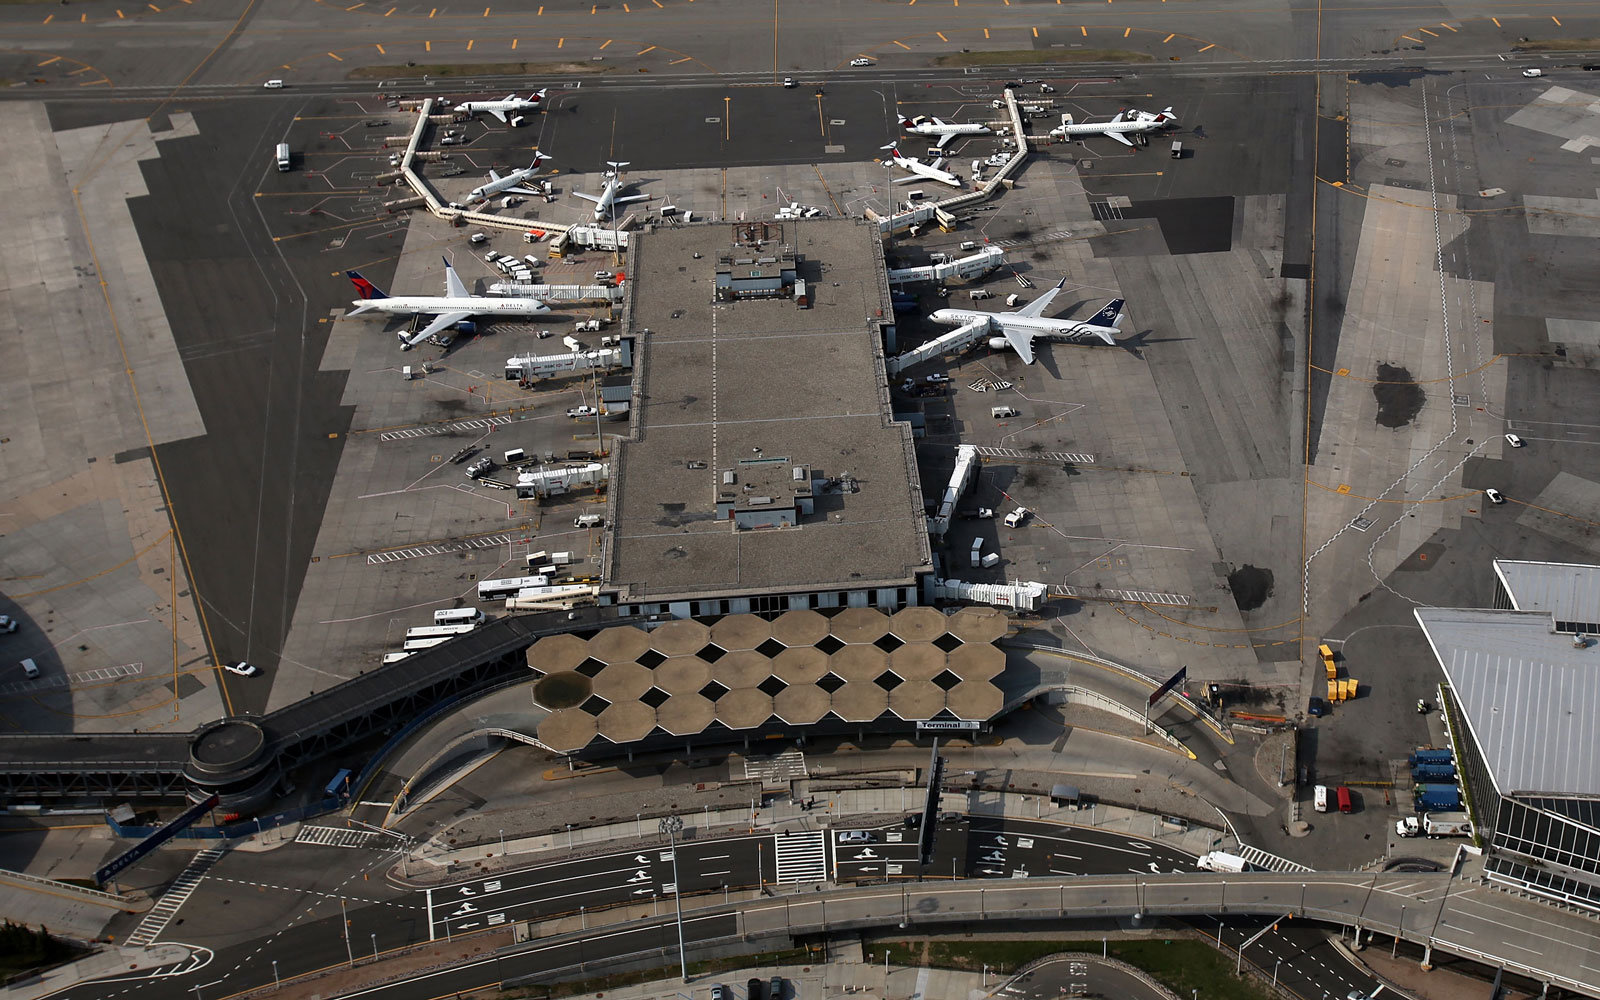 An aerial view of JFK airport in New York City.